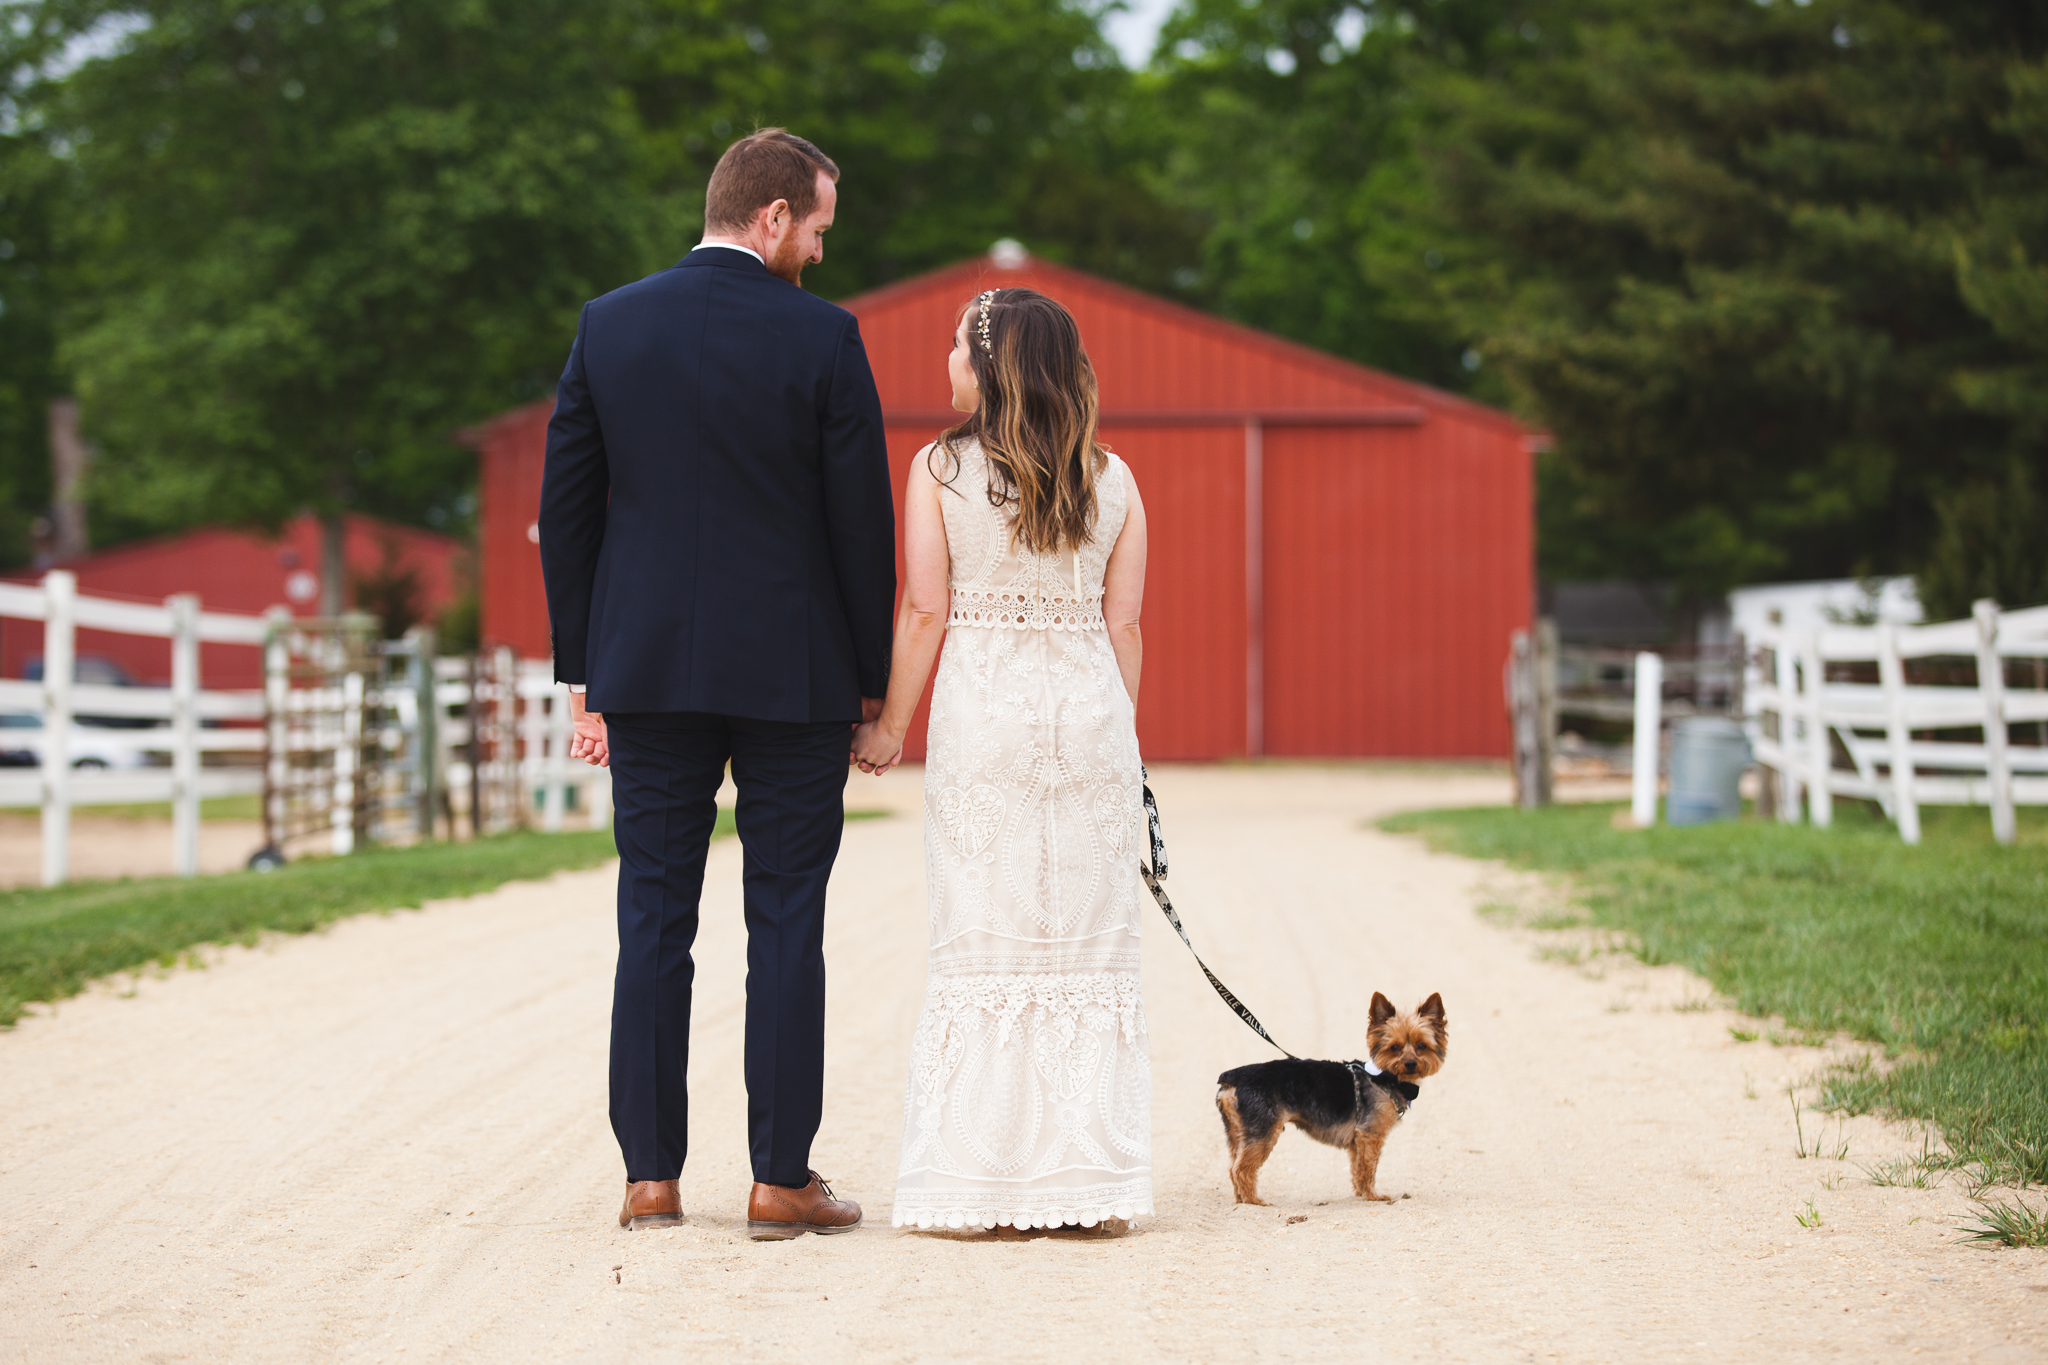 Family Farm Wedding in South Jersey Photography - Rustic Barn NJ - Millville, Vineland, Pittsgrove, Cape May, Ocean City - Creative Photographer, Candid, Joyful, Adventure. Elopement, Casual - Yorkie Puppy Pet Dog